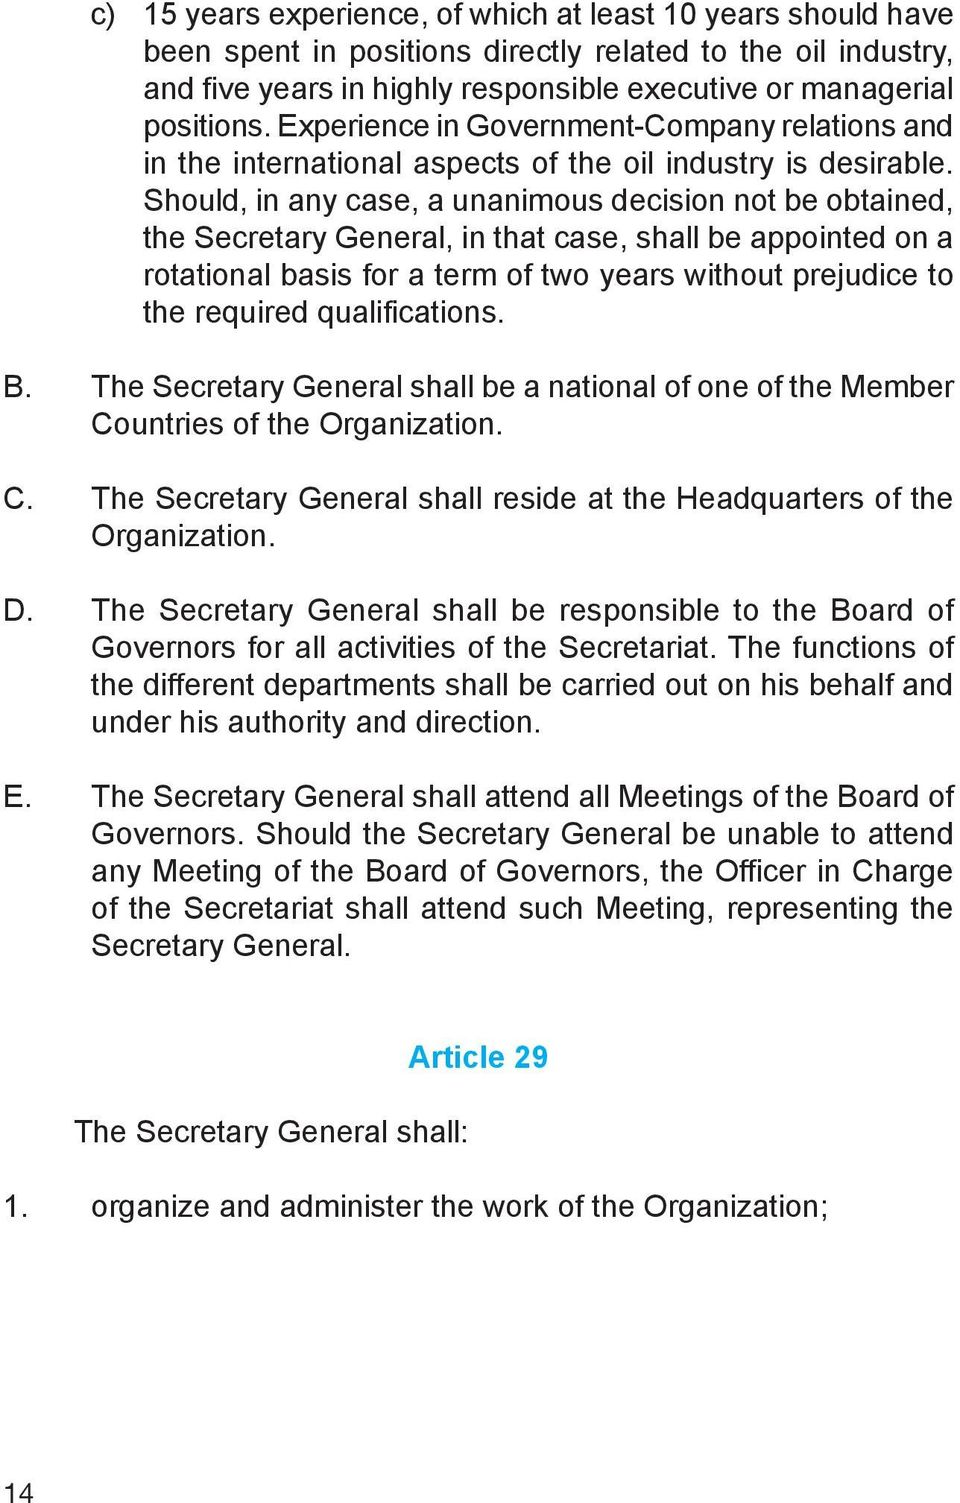 Should, in any case, a unanimous decision not be obtained, the Secretary General, in that case, shall be appointed on a rotational basis for a term of two years without prejudice to the required